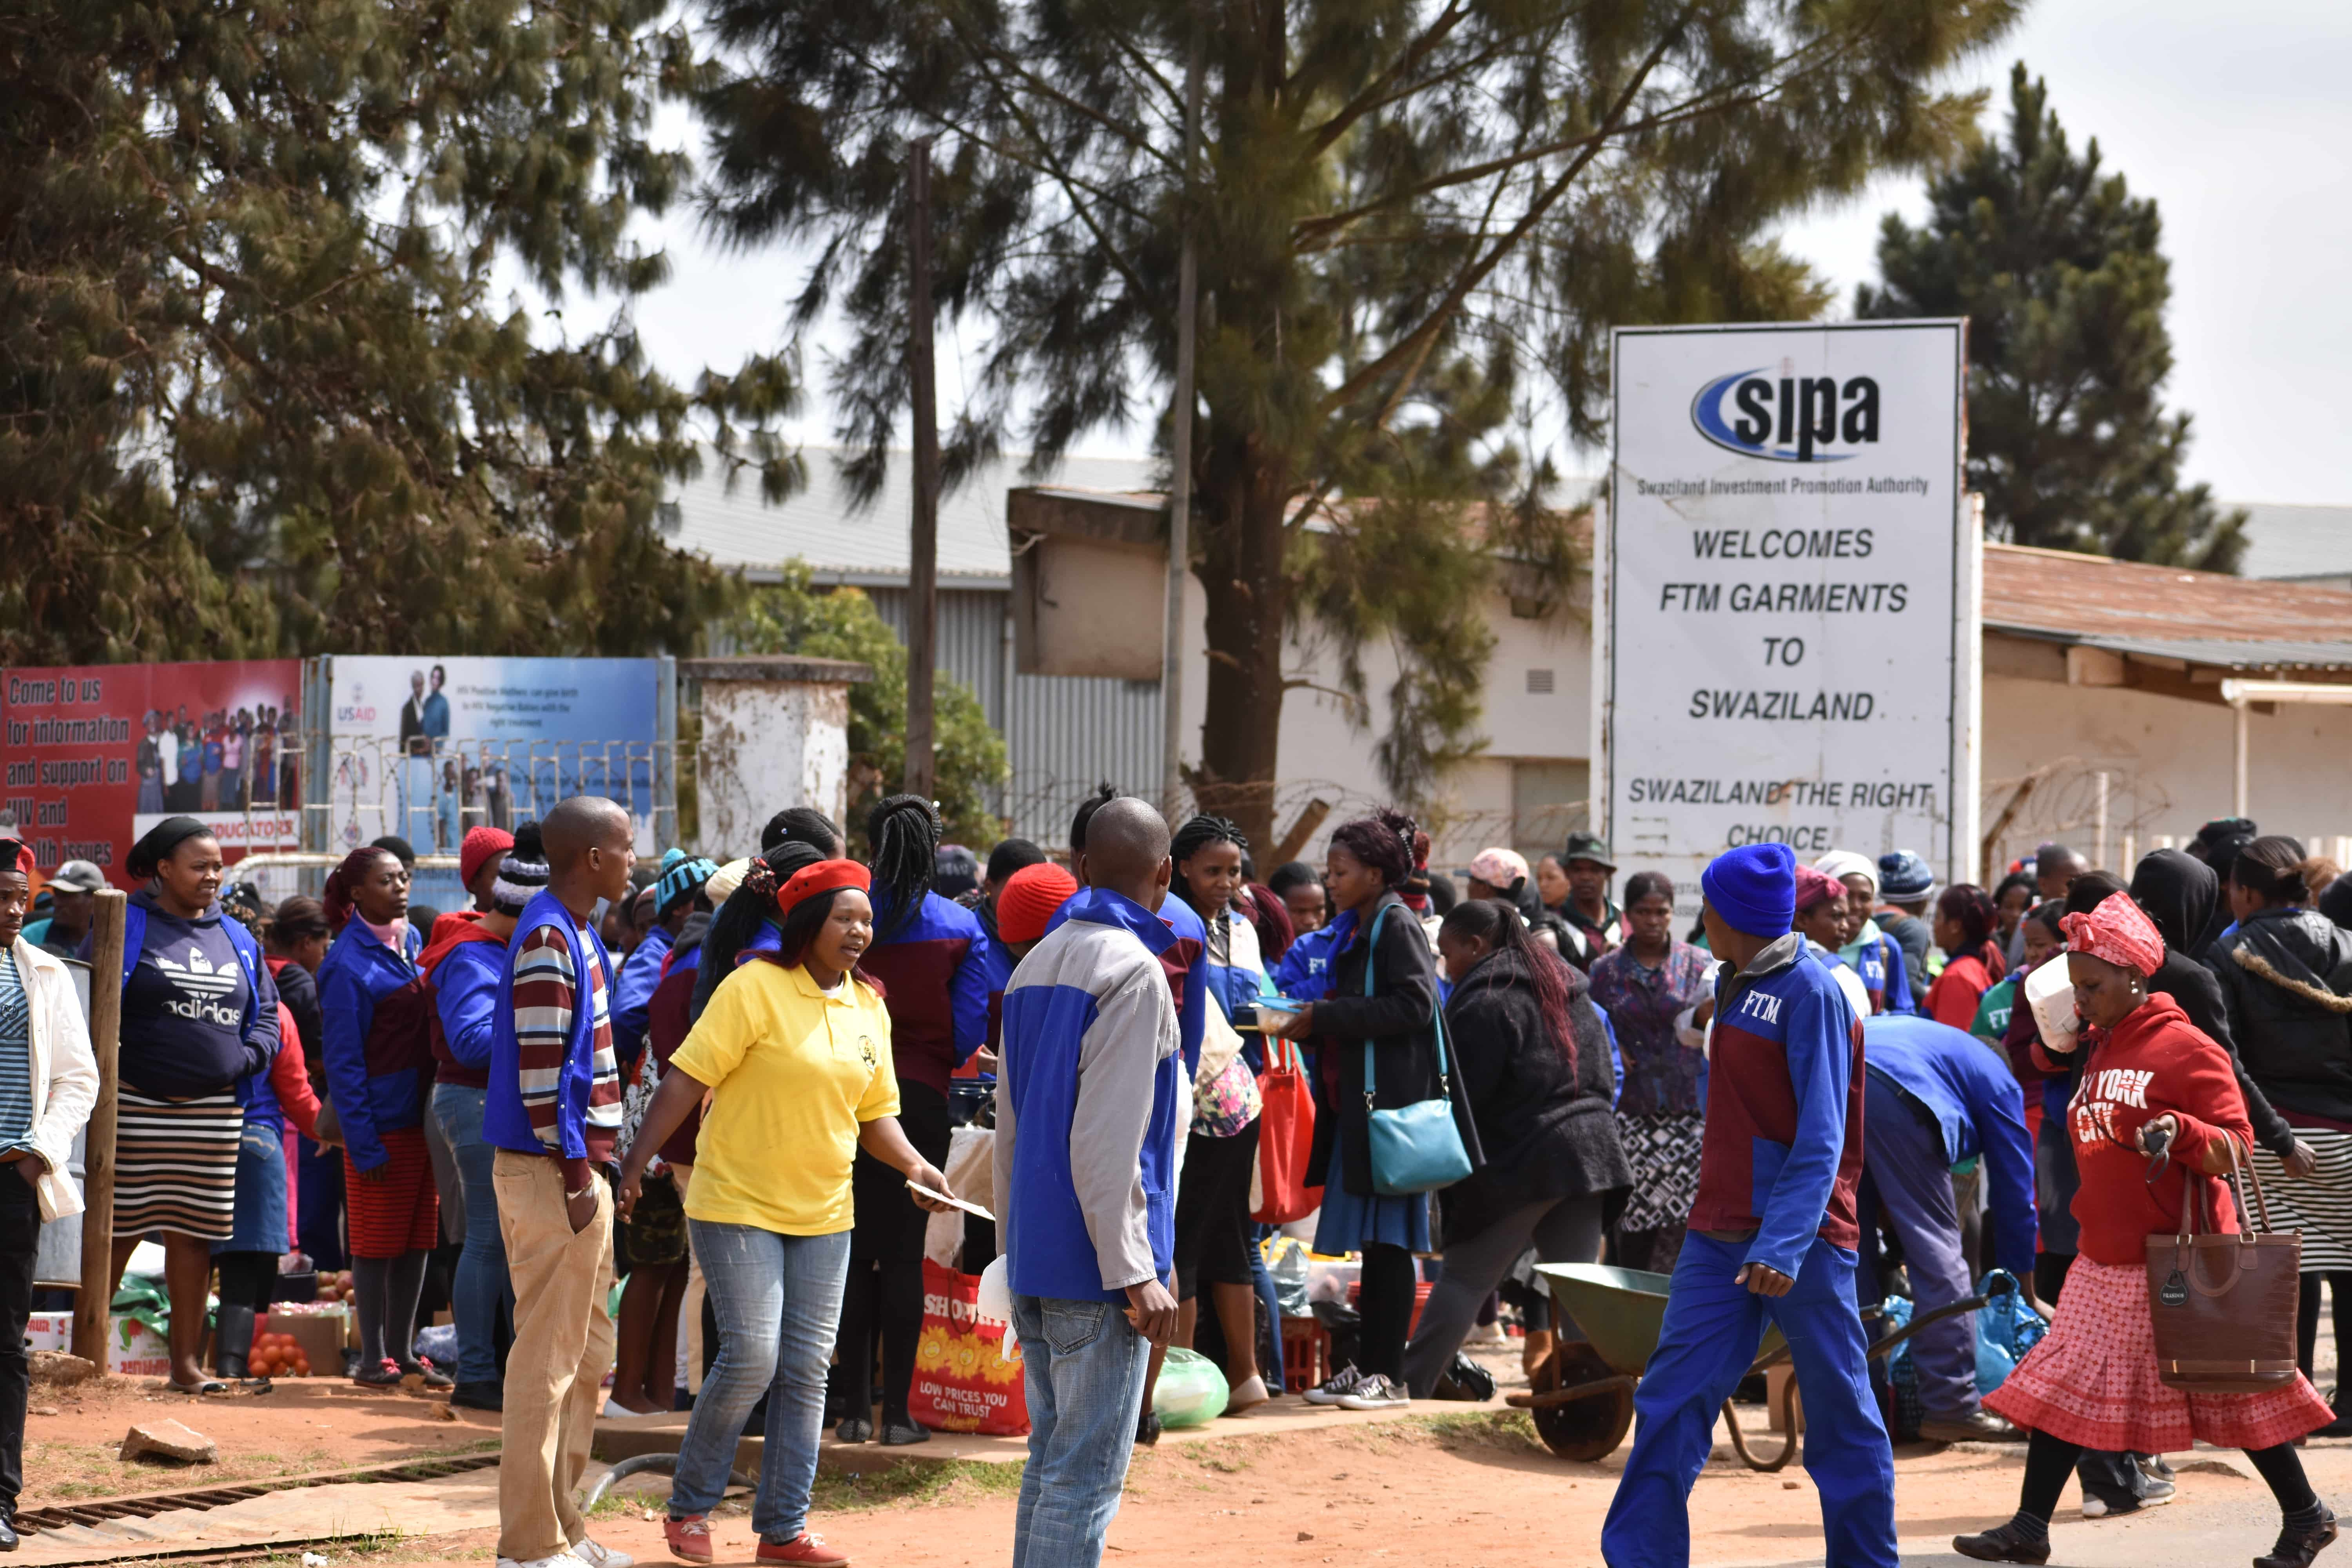 Swazi union condemns garment company for not respecting workers' rights